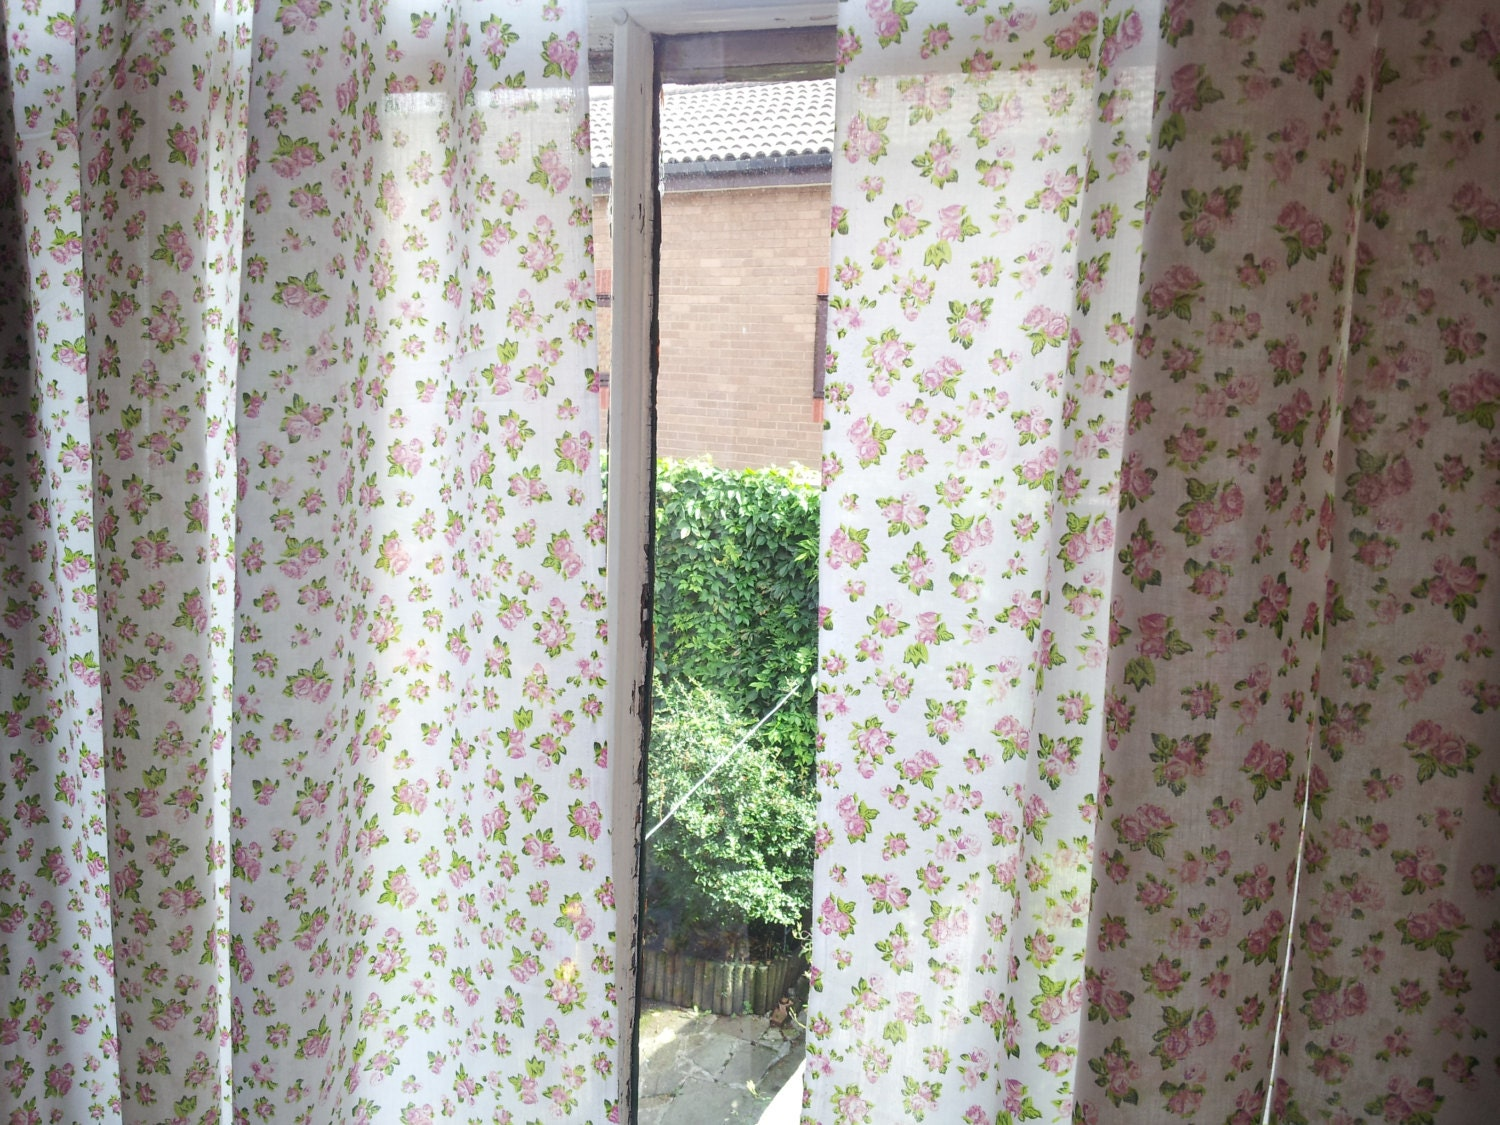 301 moved permanently Shabby chic curtain window